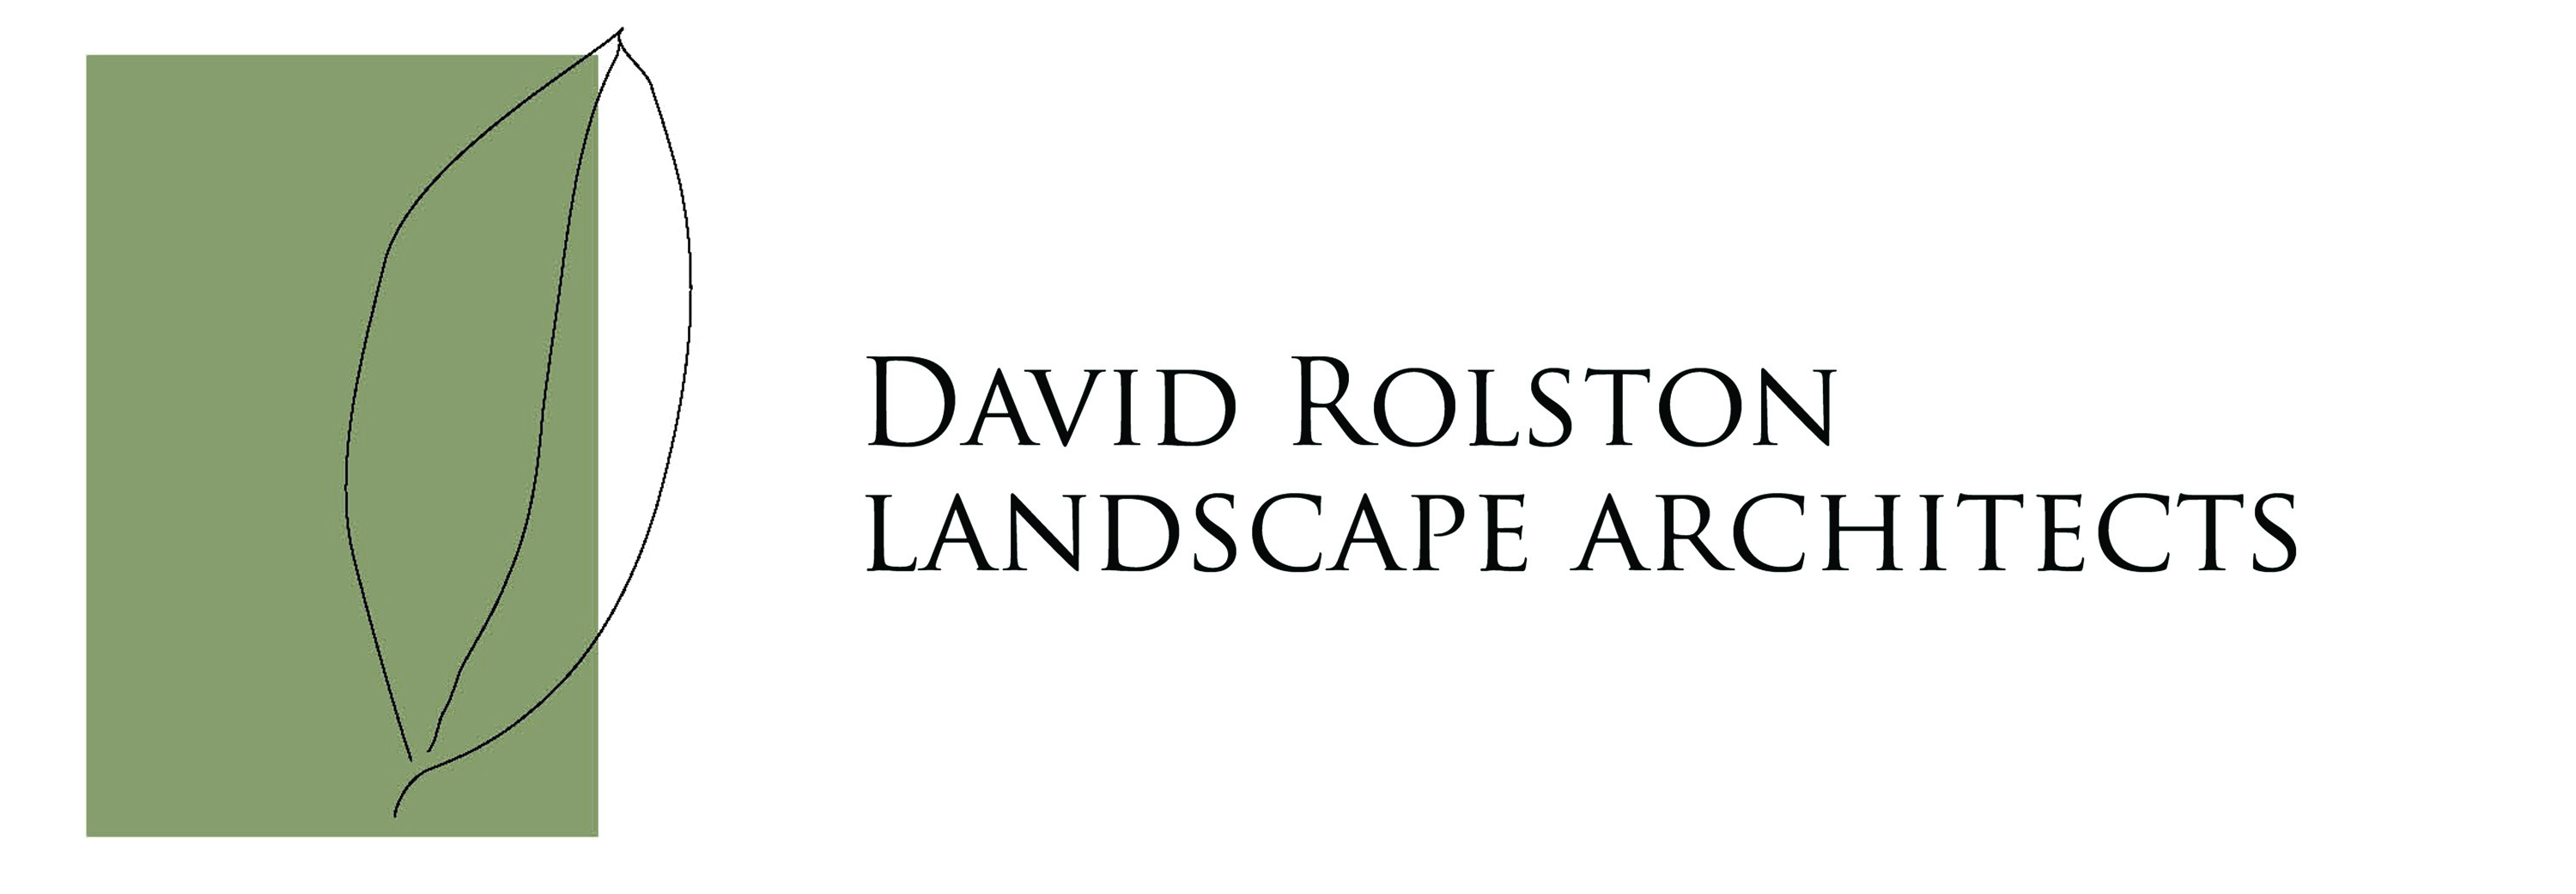 2019 Home Tour- David Rolston Landscape Architect logo